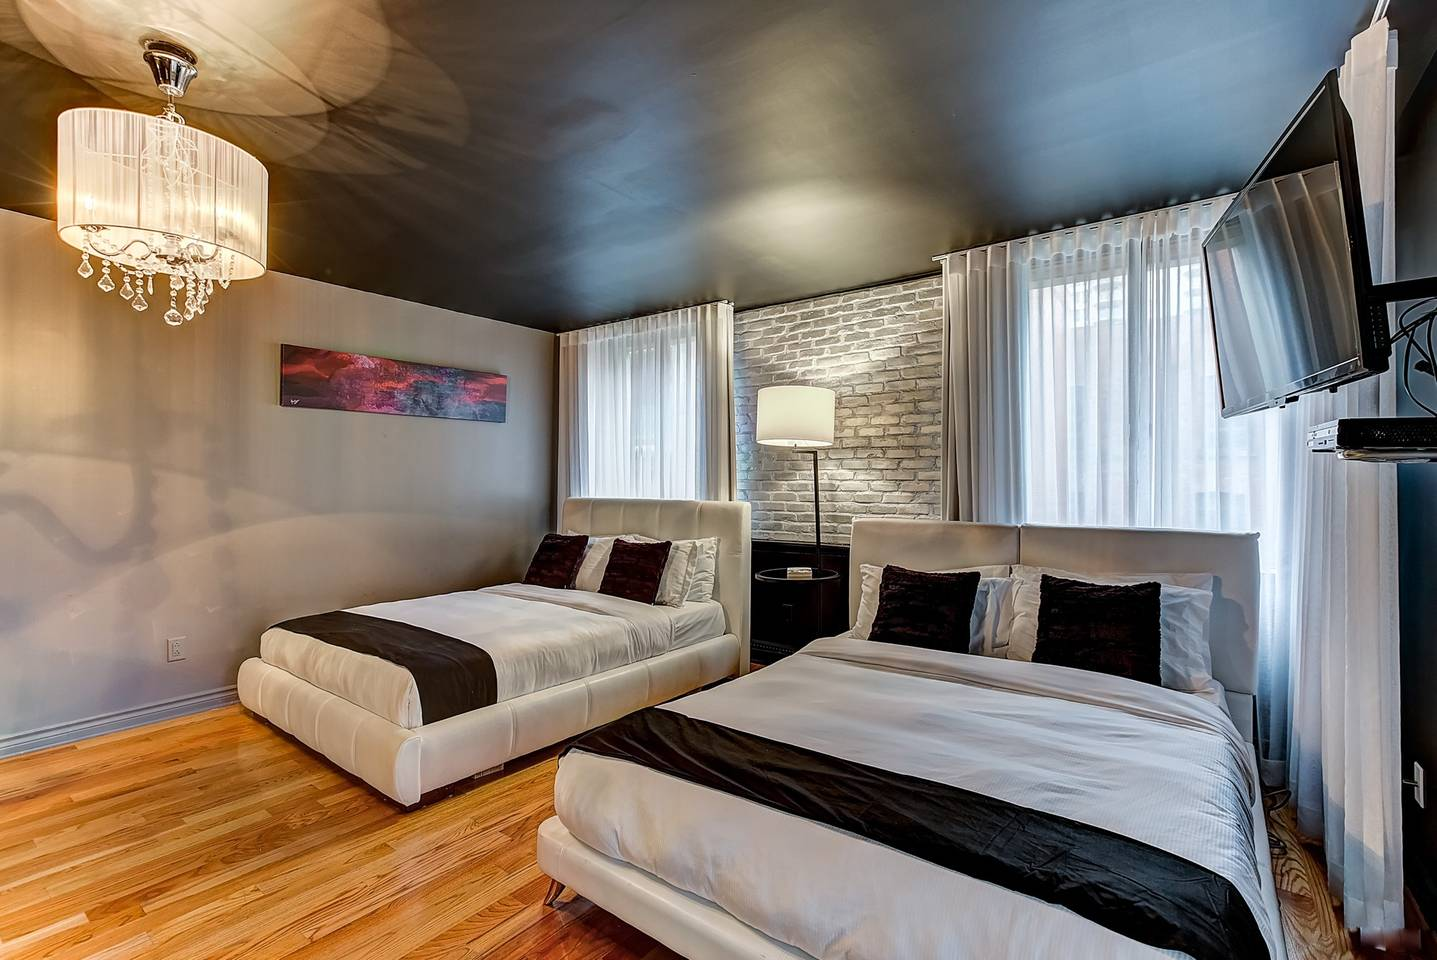 Classique Family Studio (104) Drummond By Bouticstay photo 16300410